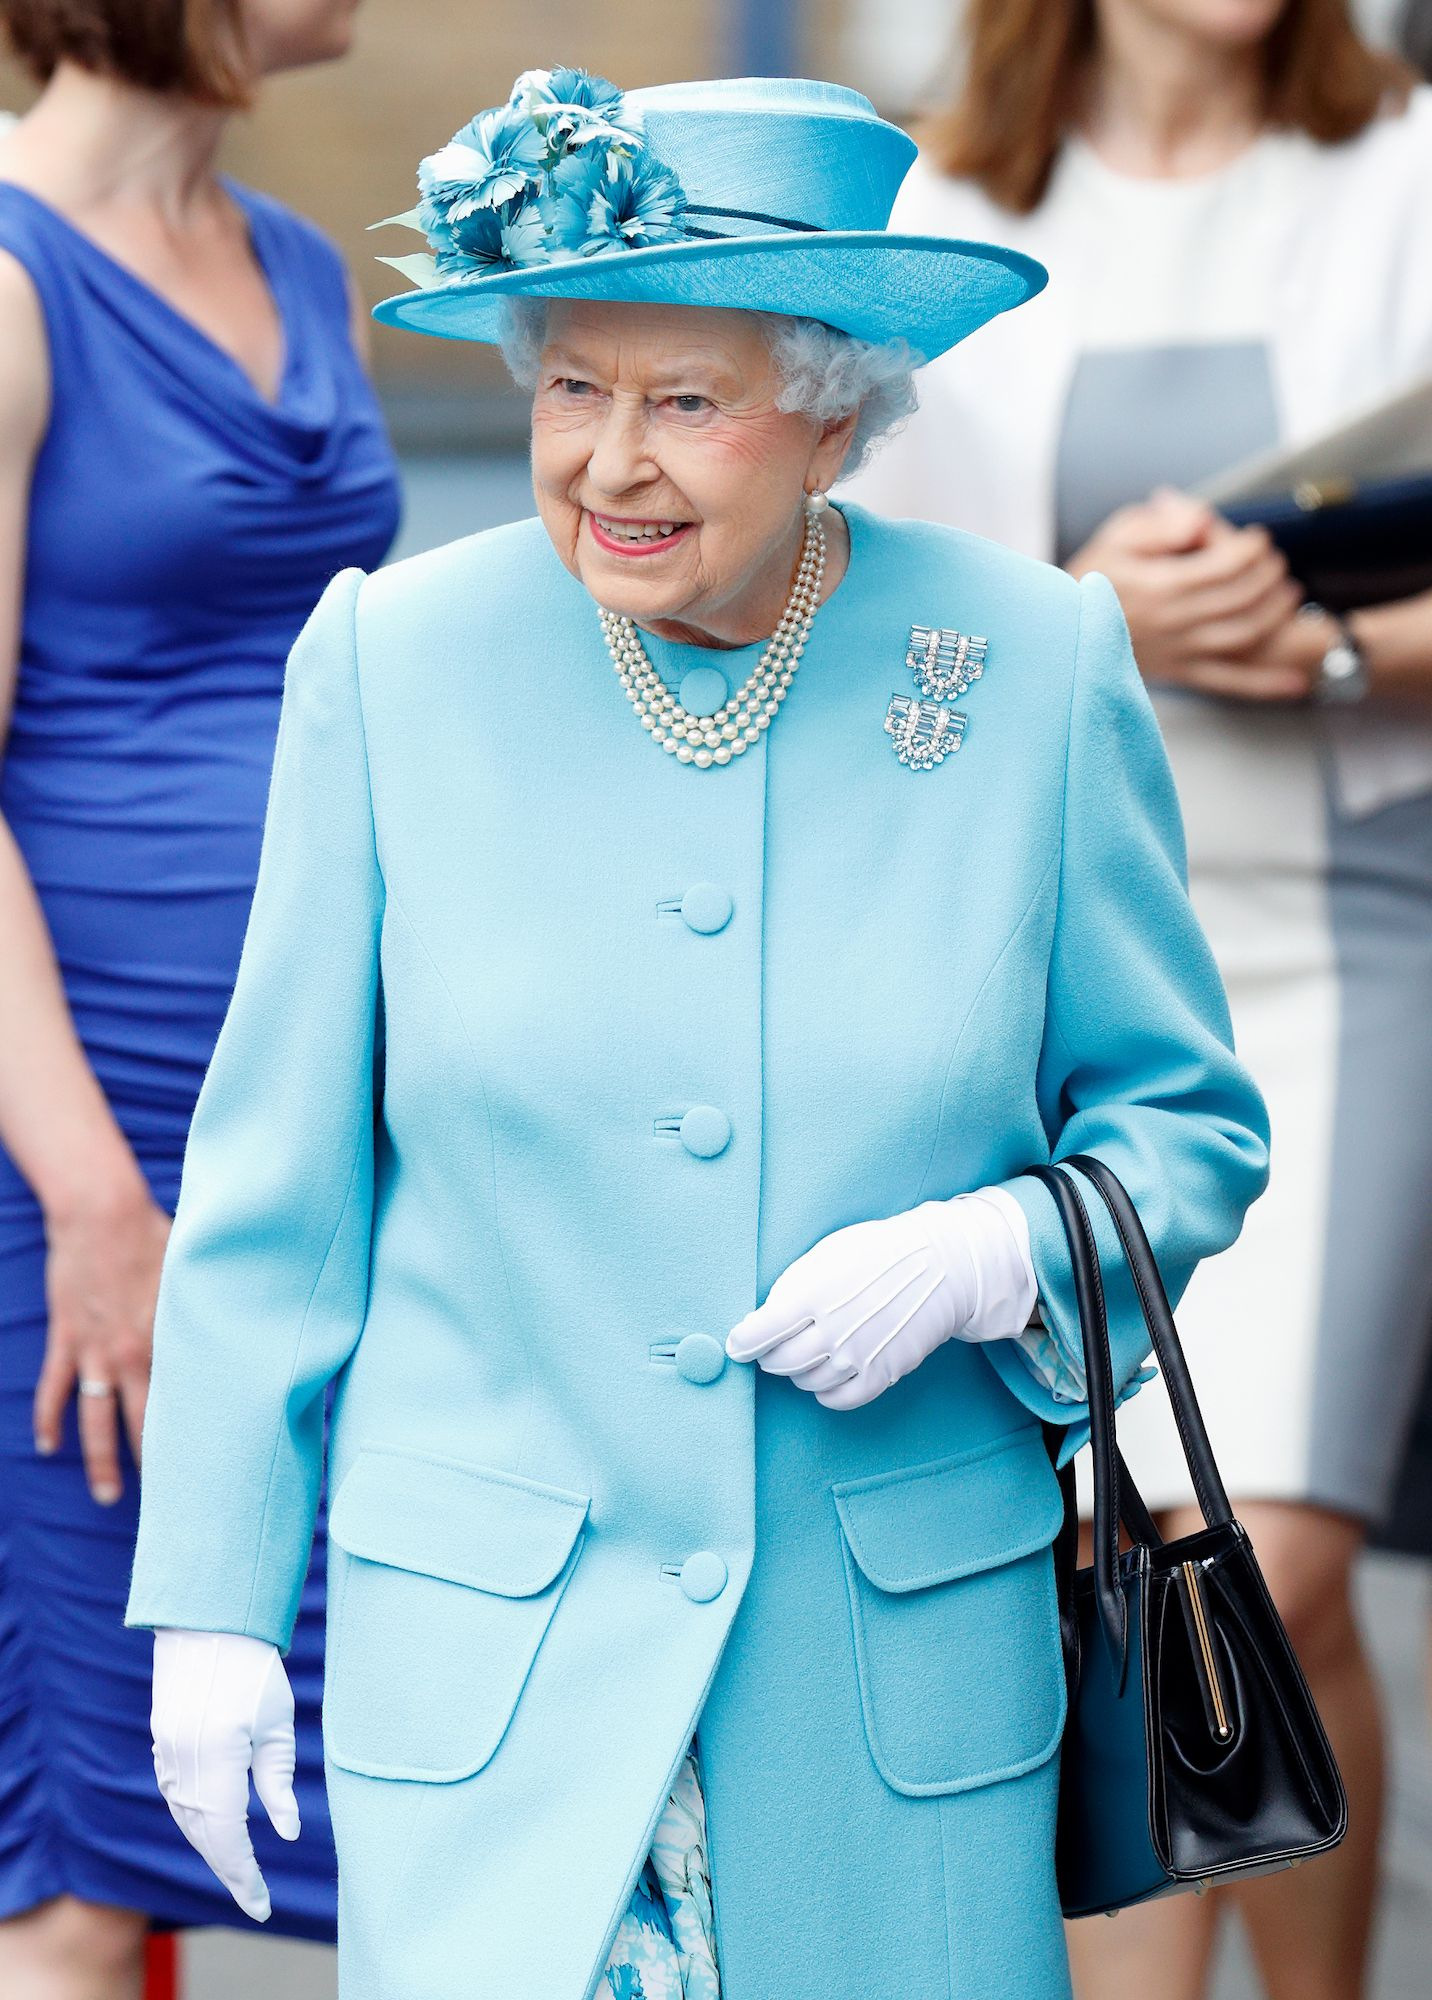 5 Queen Elizabeth II Brooches And The Stories Behind Them